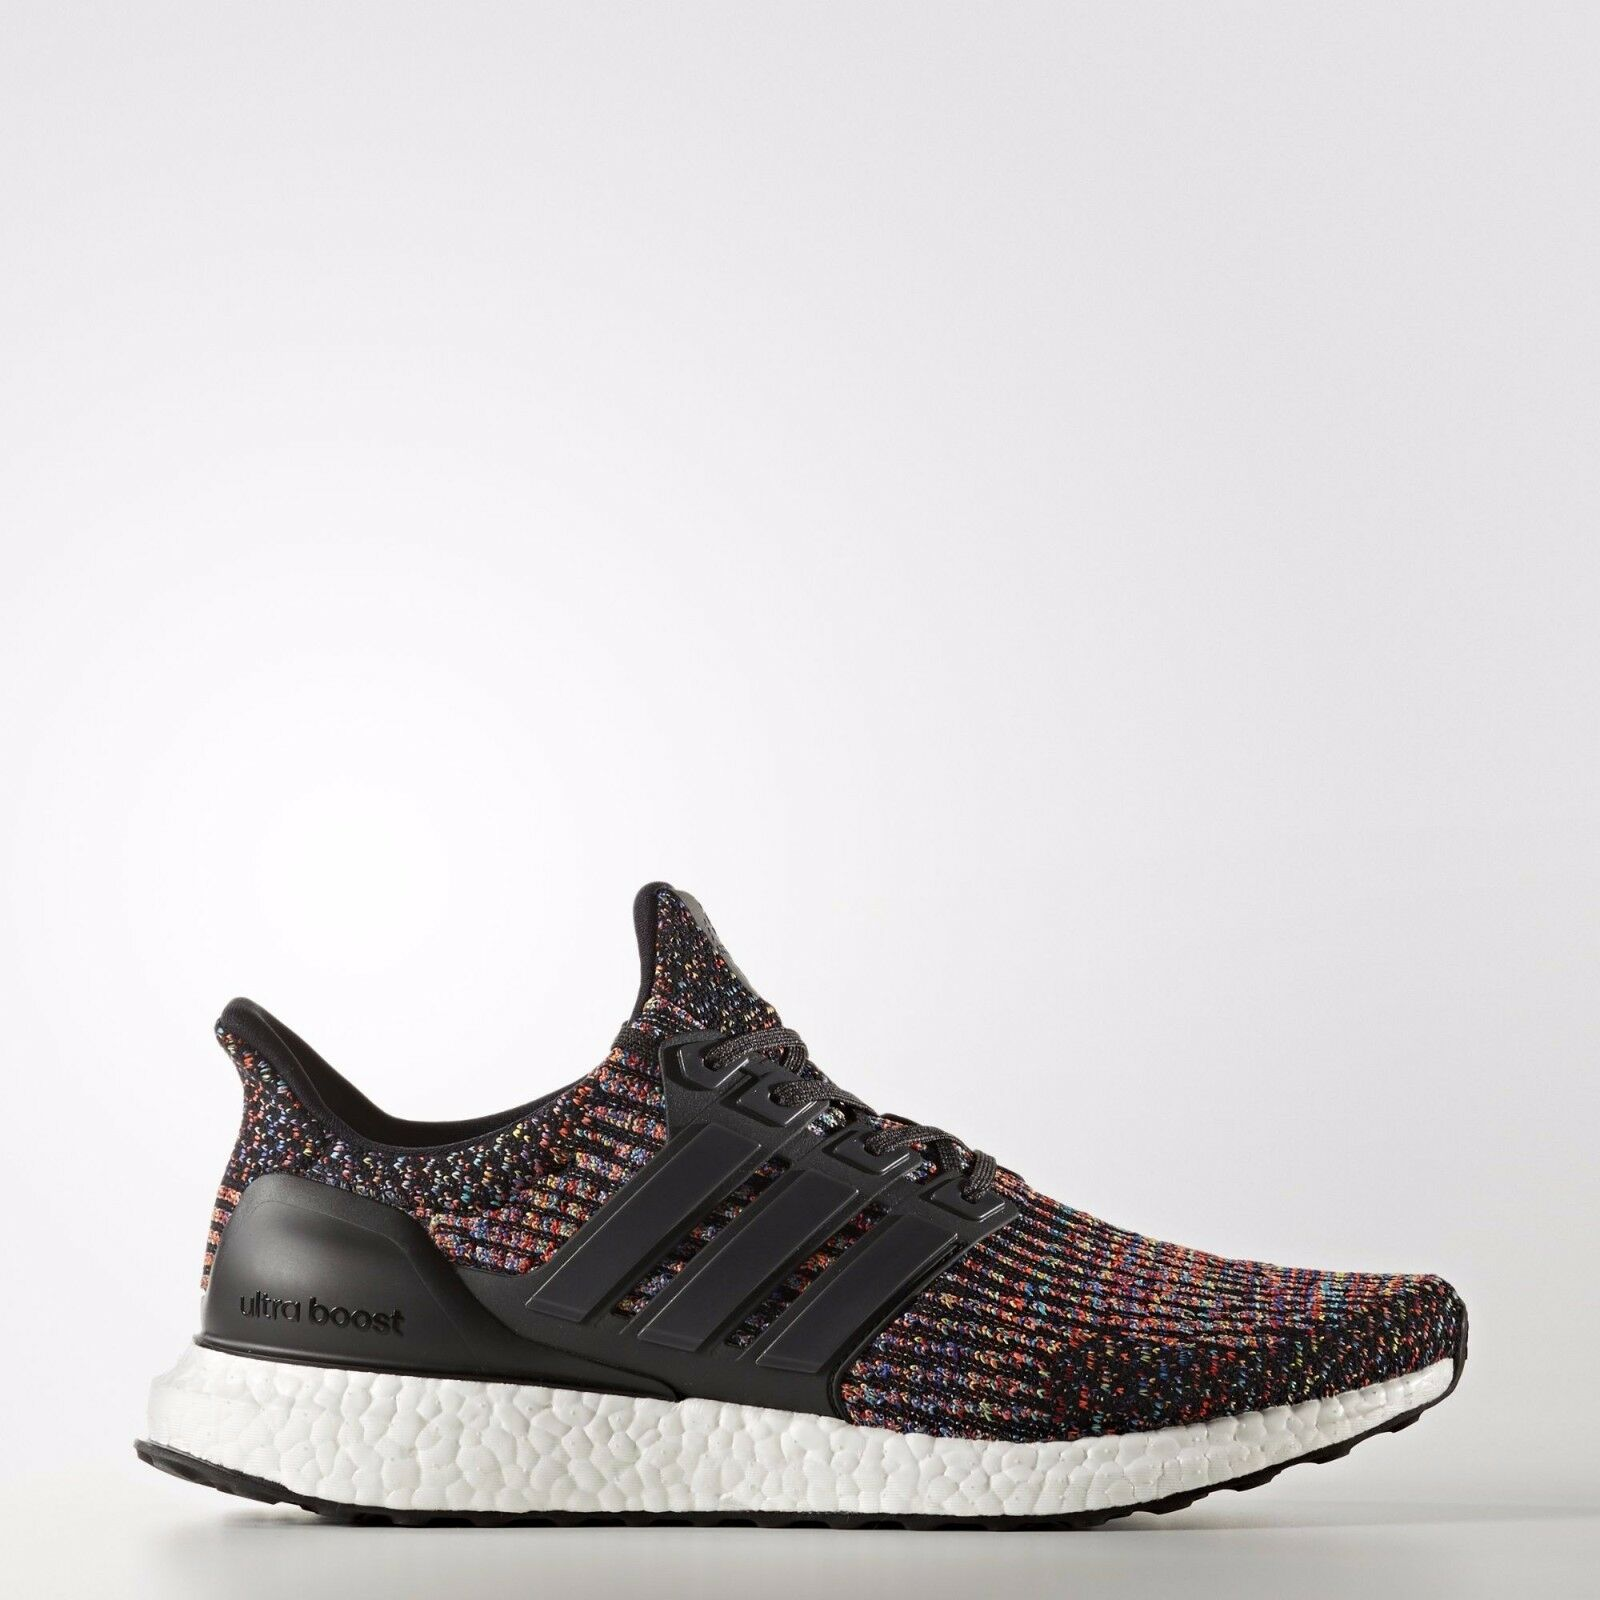 NEW DS size 10 Adidas Ultra Boost 3.0 Multi-color UltraBOOST LTD Rainbow CG3004